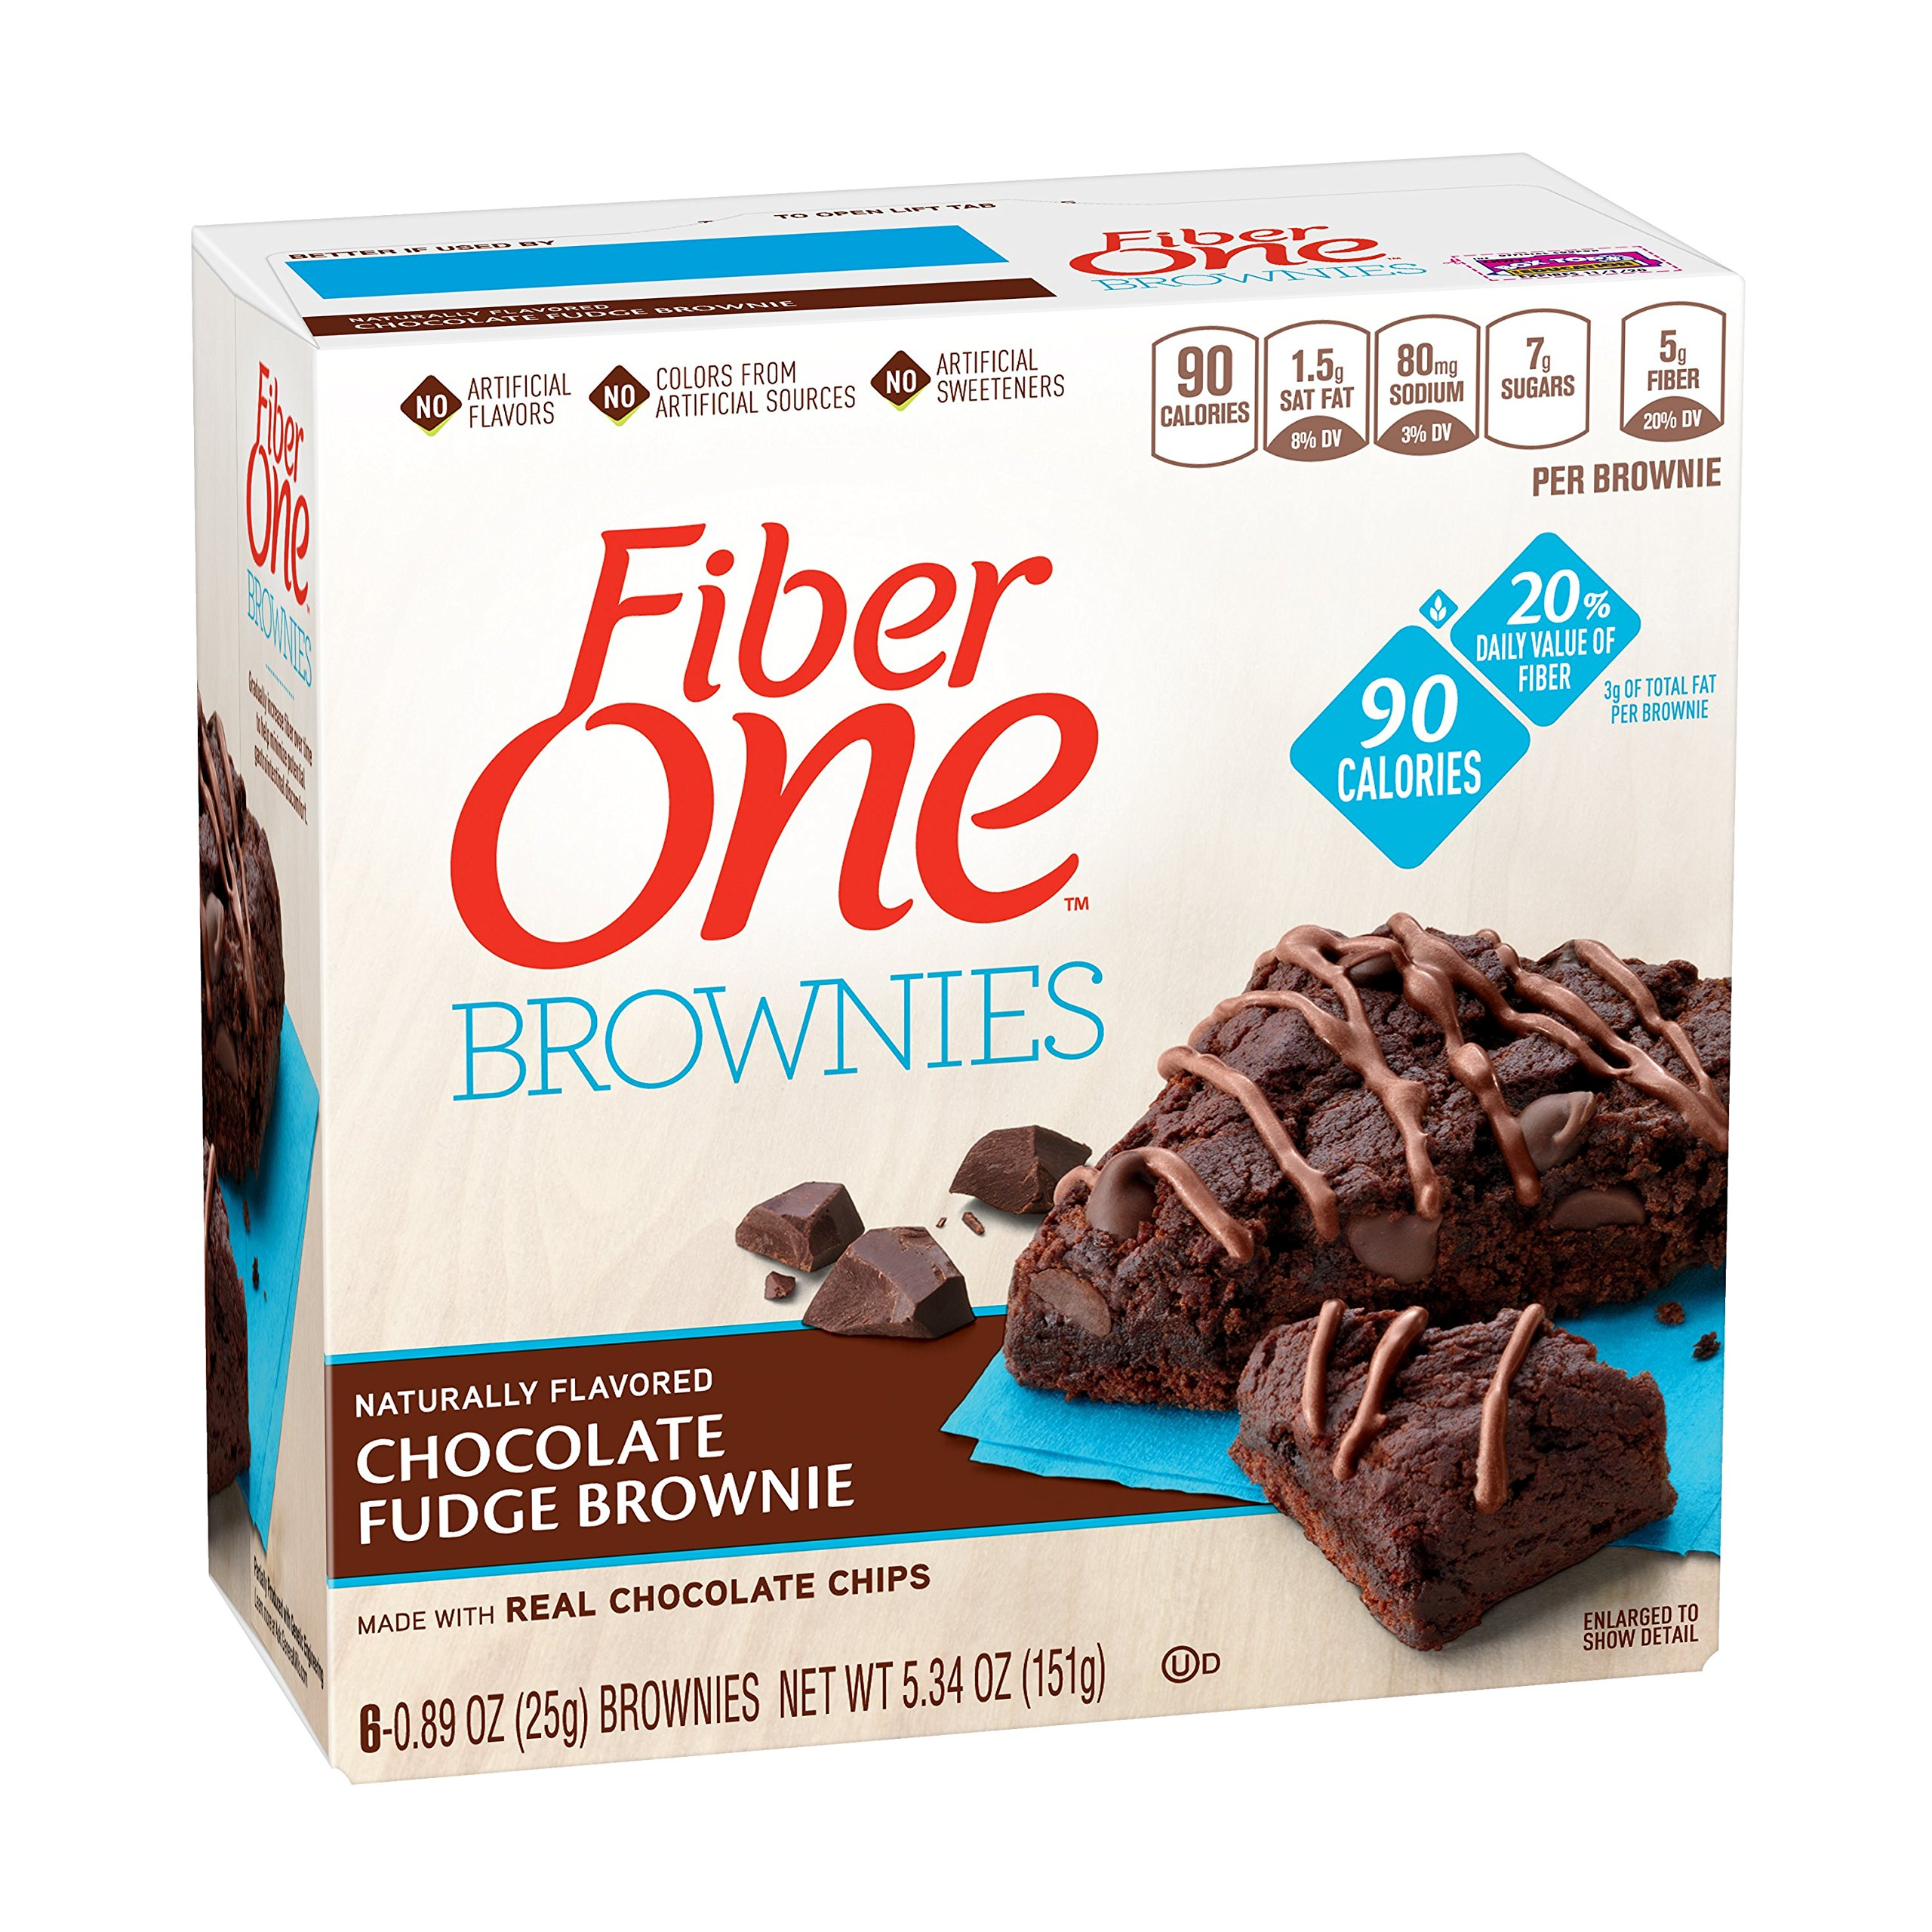 Fiber One Brownies, 90 Calorie Bar, Chocolate Fudge Brownie, 6 Fiber Bars, 5.34 oz